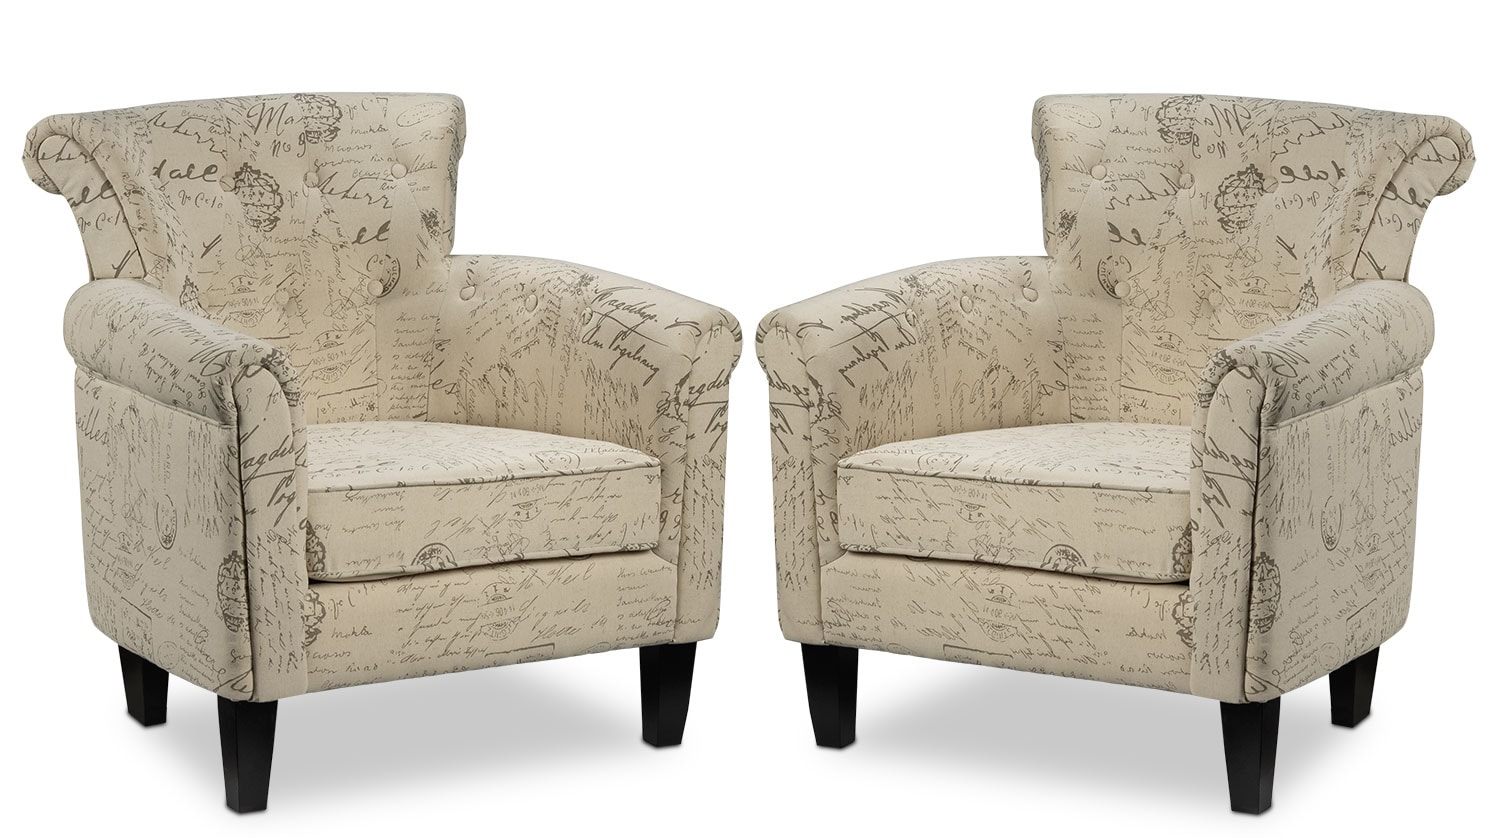 Living Room Furniture - Moniker 2-Piece Accent Chair Set